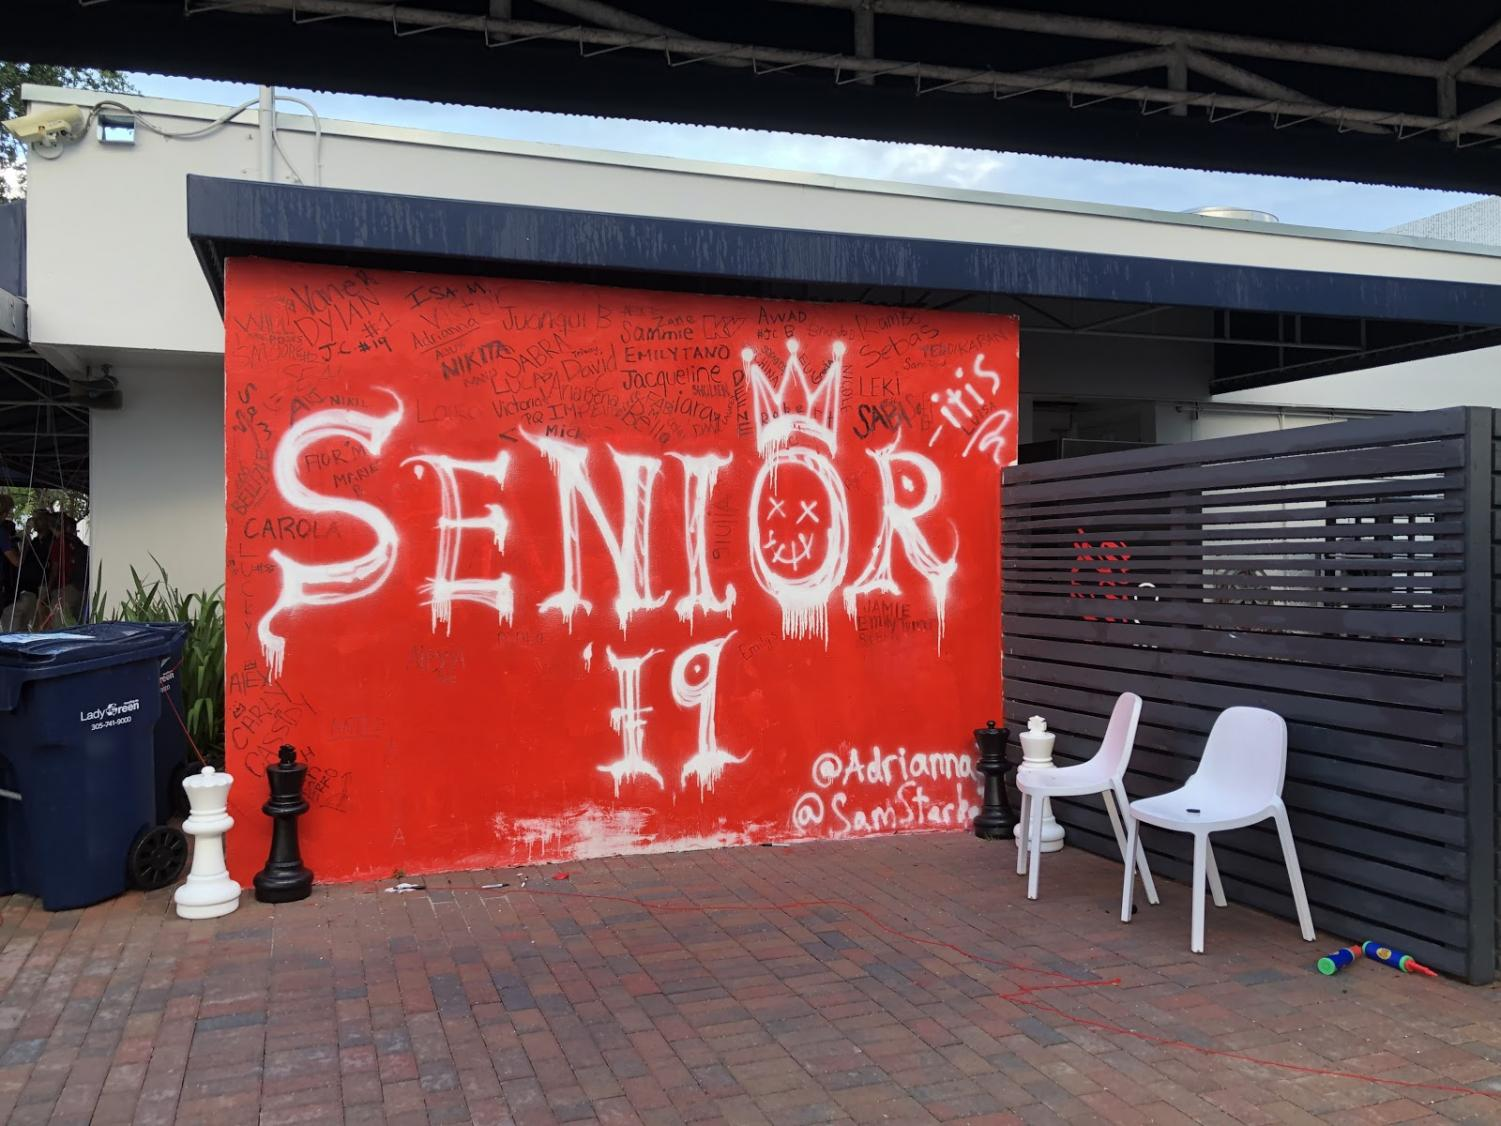 Students were greeted by a red senior wall on the morning of May 2 in the area outside of the cafeteria. This was one of the the results of the senior